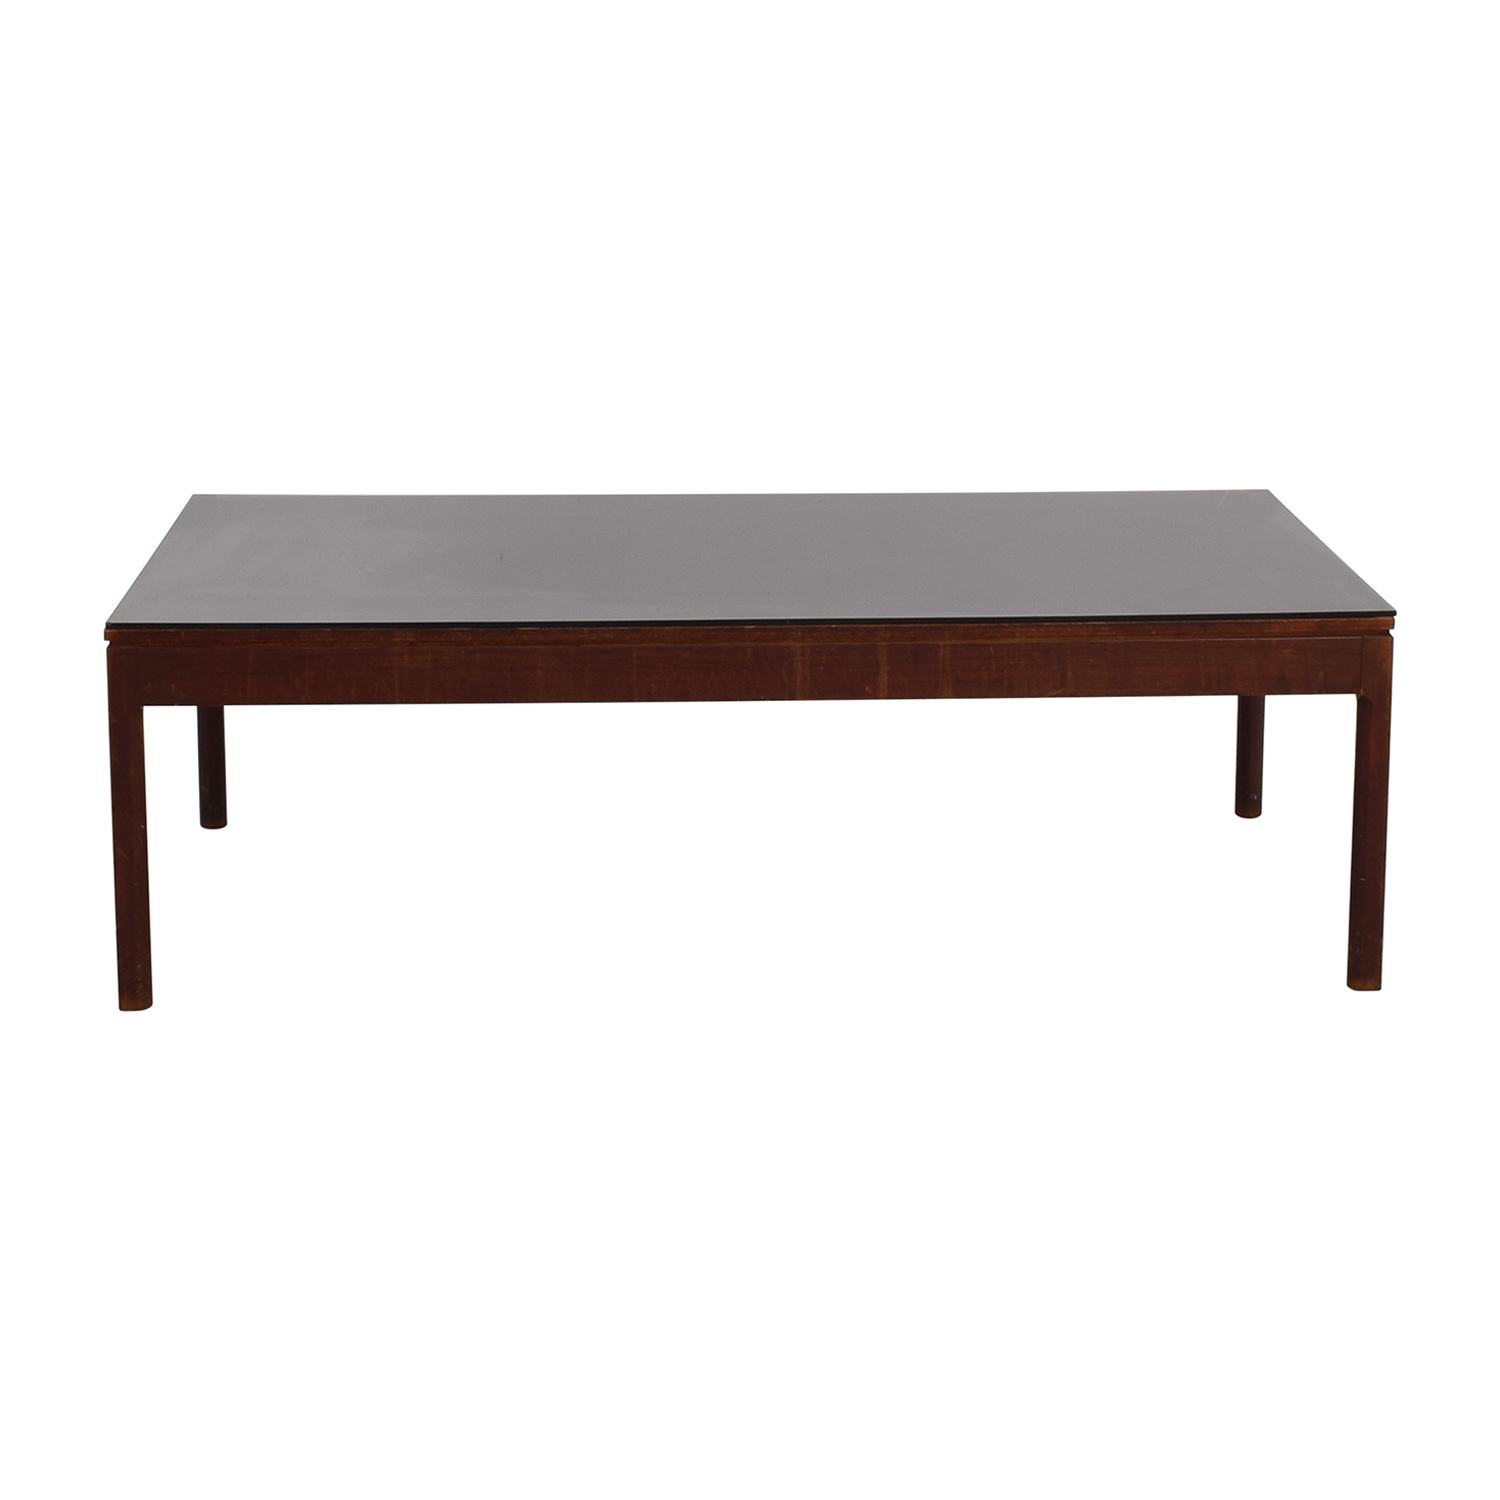 Mid Century Black Coffee Table Shop Quality Used Furniture From Top Furniture Brands